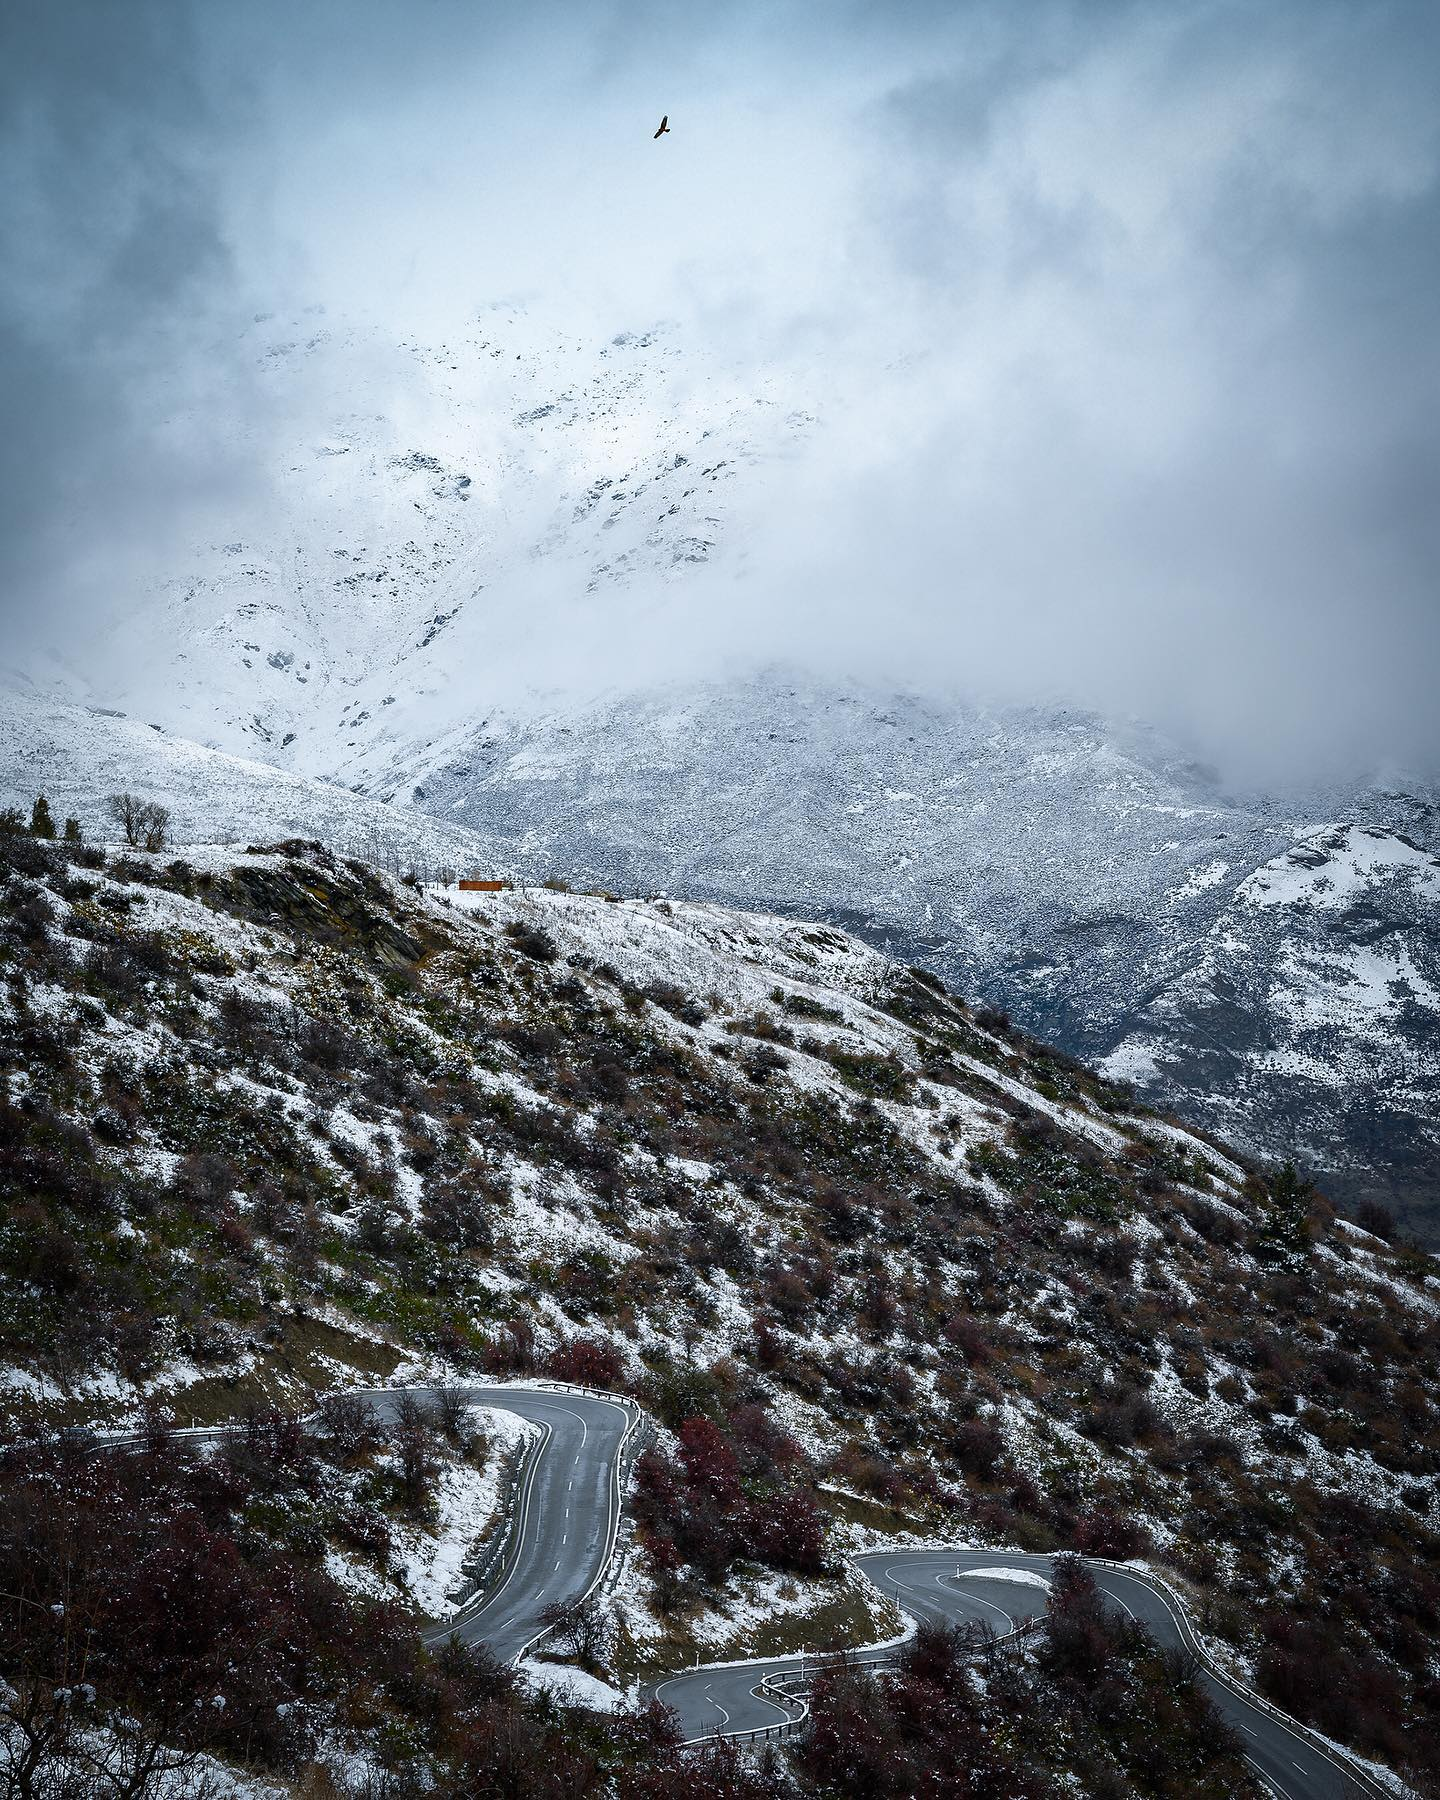 What's better than driving on the highest main road in New Zealand where 4WDs and chains are often required? ❄️🗻Doing it when fresh snow fell over night 😅. The Crown Range road rallies Queenstown to Wanaka and reaches an altitude of 1121 meters, with great views all around. For this one shot, I had to scramble for the camera as a NZ native Kahu (Swamp Harrier 🦅) was in the perfect spot over the twisting scenic road.  . . . . . #queenstown #queenstownlive #walterpeak #nzmustdo #purenewzealand #exploremore #ignewzealand #nzgeophoto #nz #nouvellezelande #nztravel #nzgeo #nikonnz #queenstownnz #southisland #nzlandscapes #discovernz #southernalps #kahu #swampharrier #nznative #nznativebirds #nzlandscapephotography #nztravelmagazine #arrowtownnz #wanaka #crownrangeroad #nzroadtrip